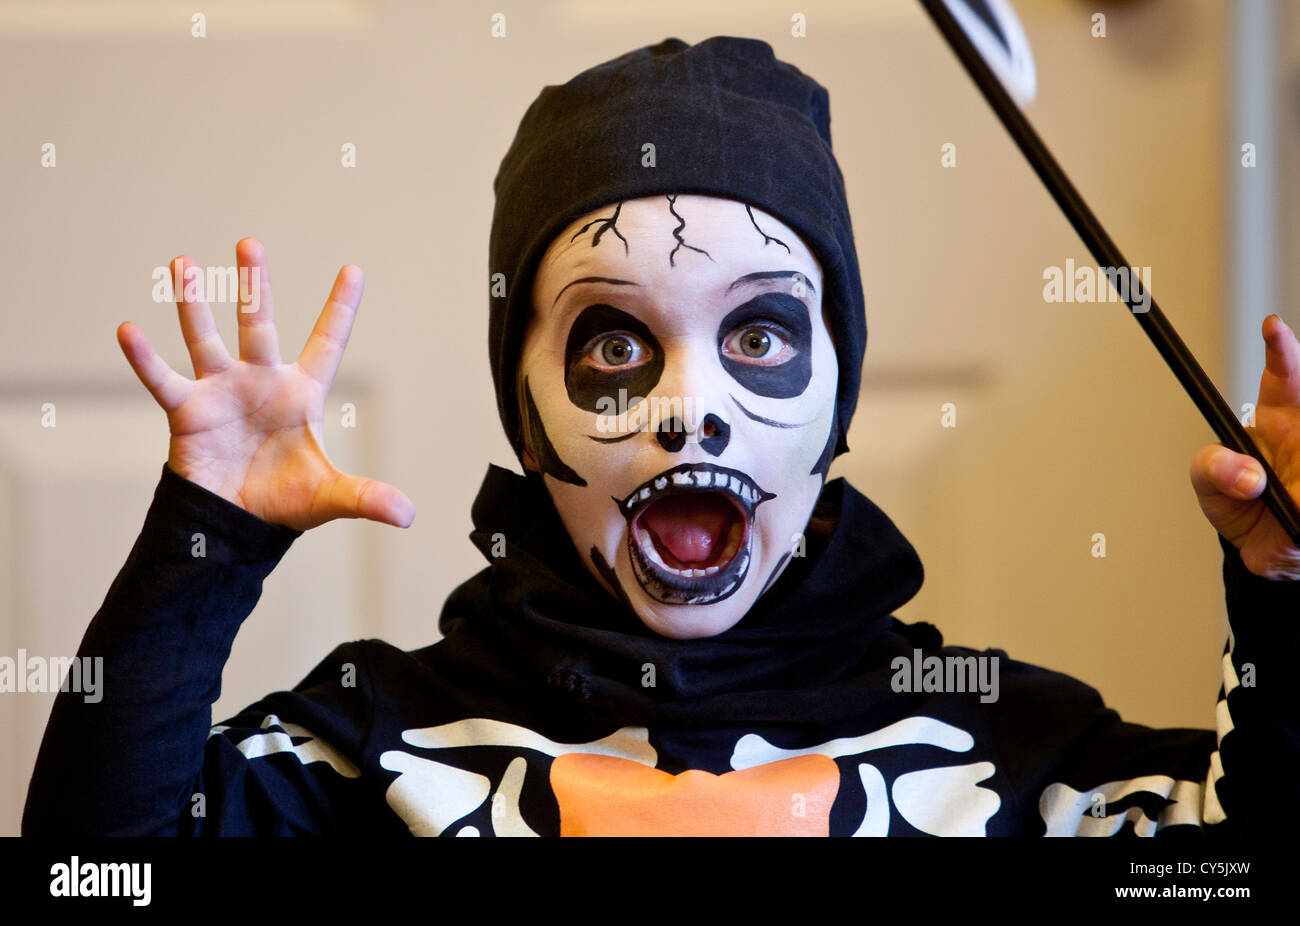 Scary Halloween Costume Ideas For Kids.Halloween Face Young Child With Face Painted Scary Face